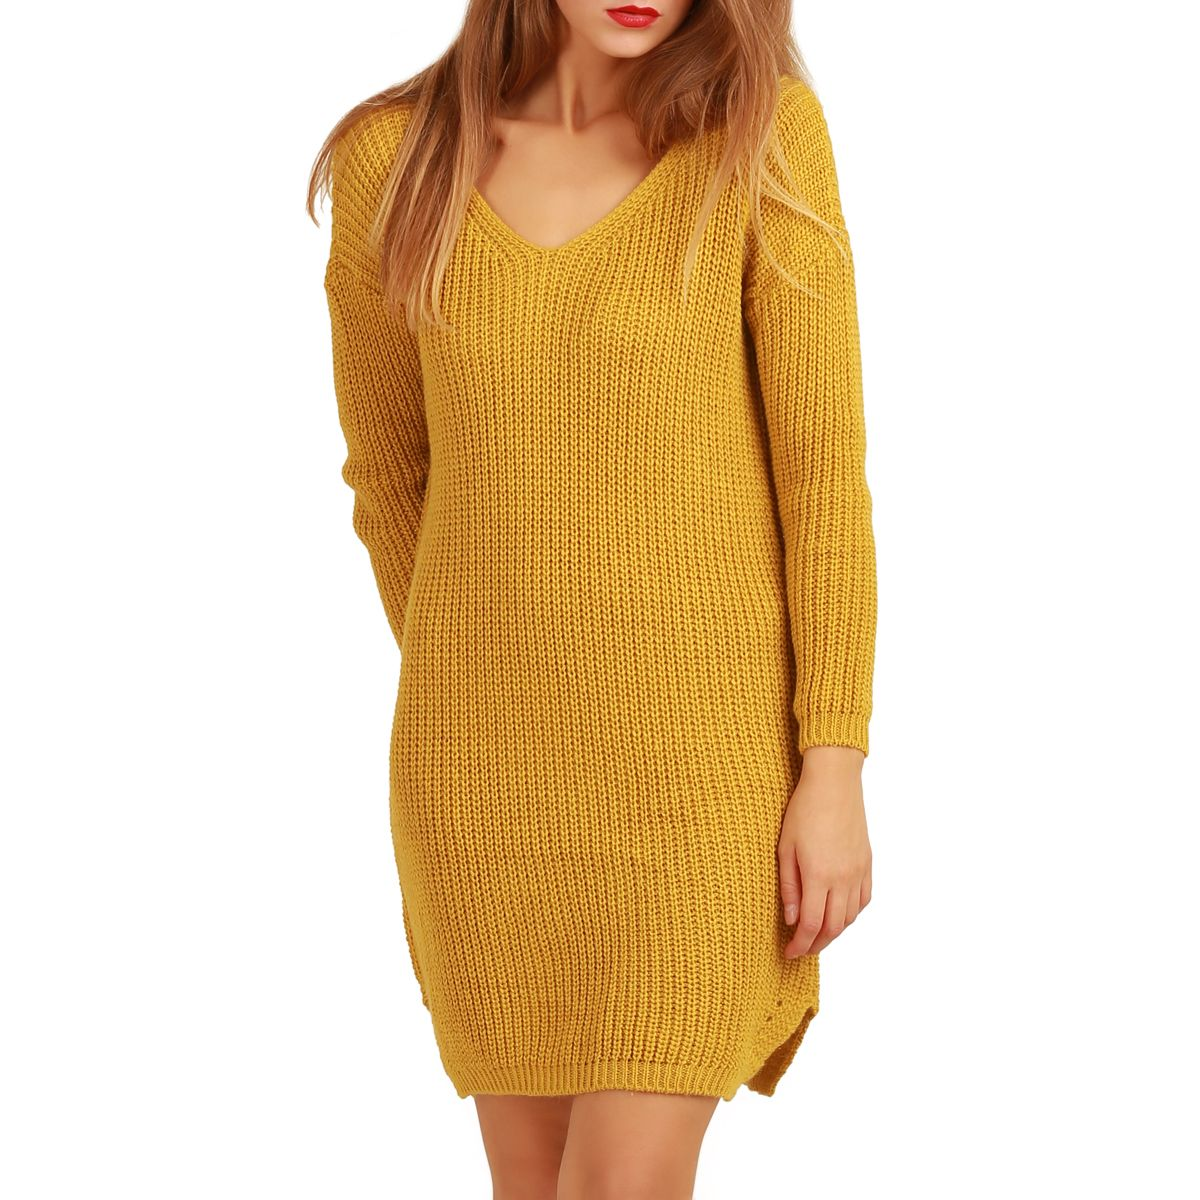 Robe pull maille femme ample